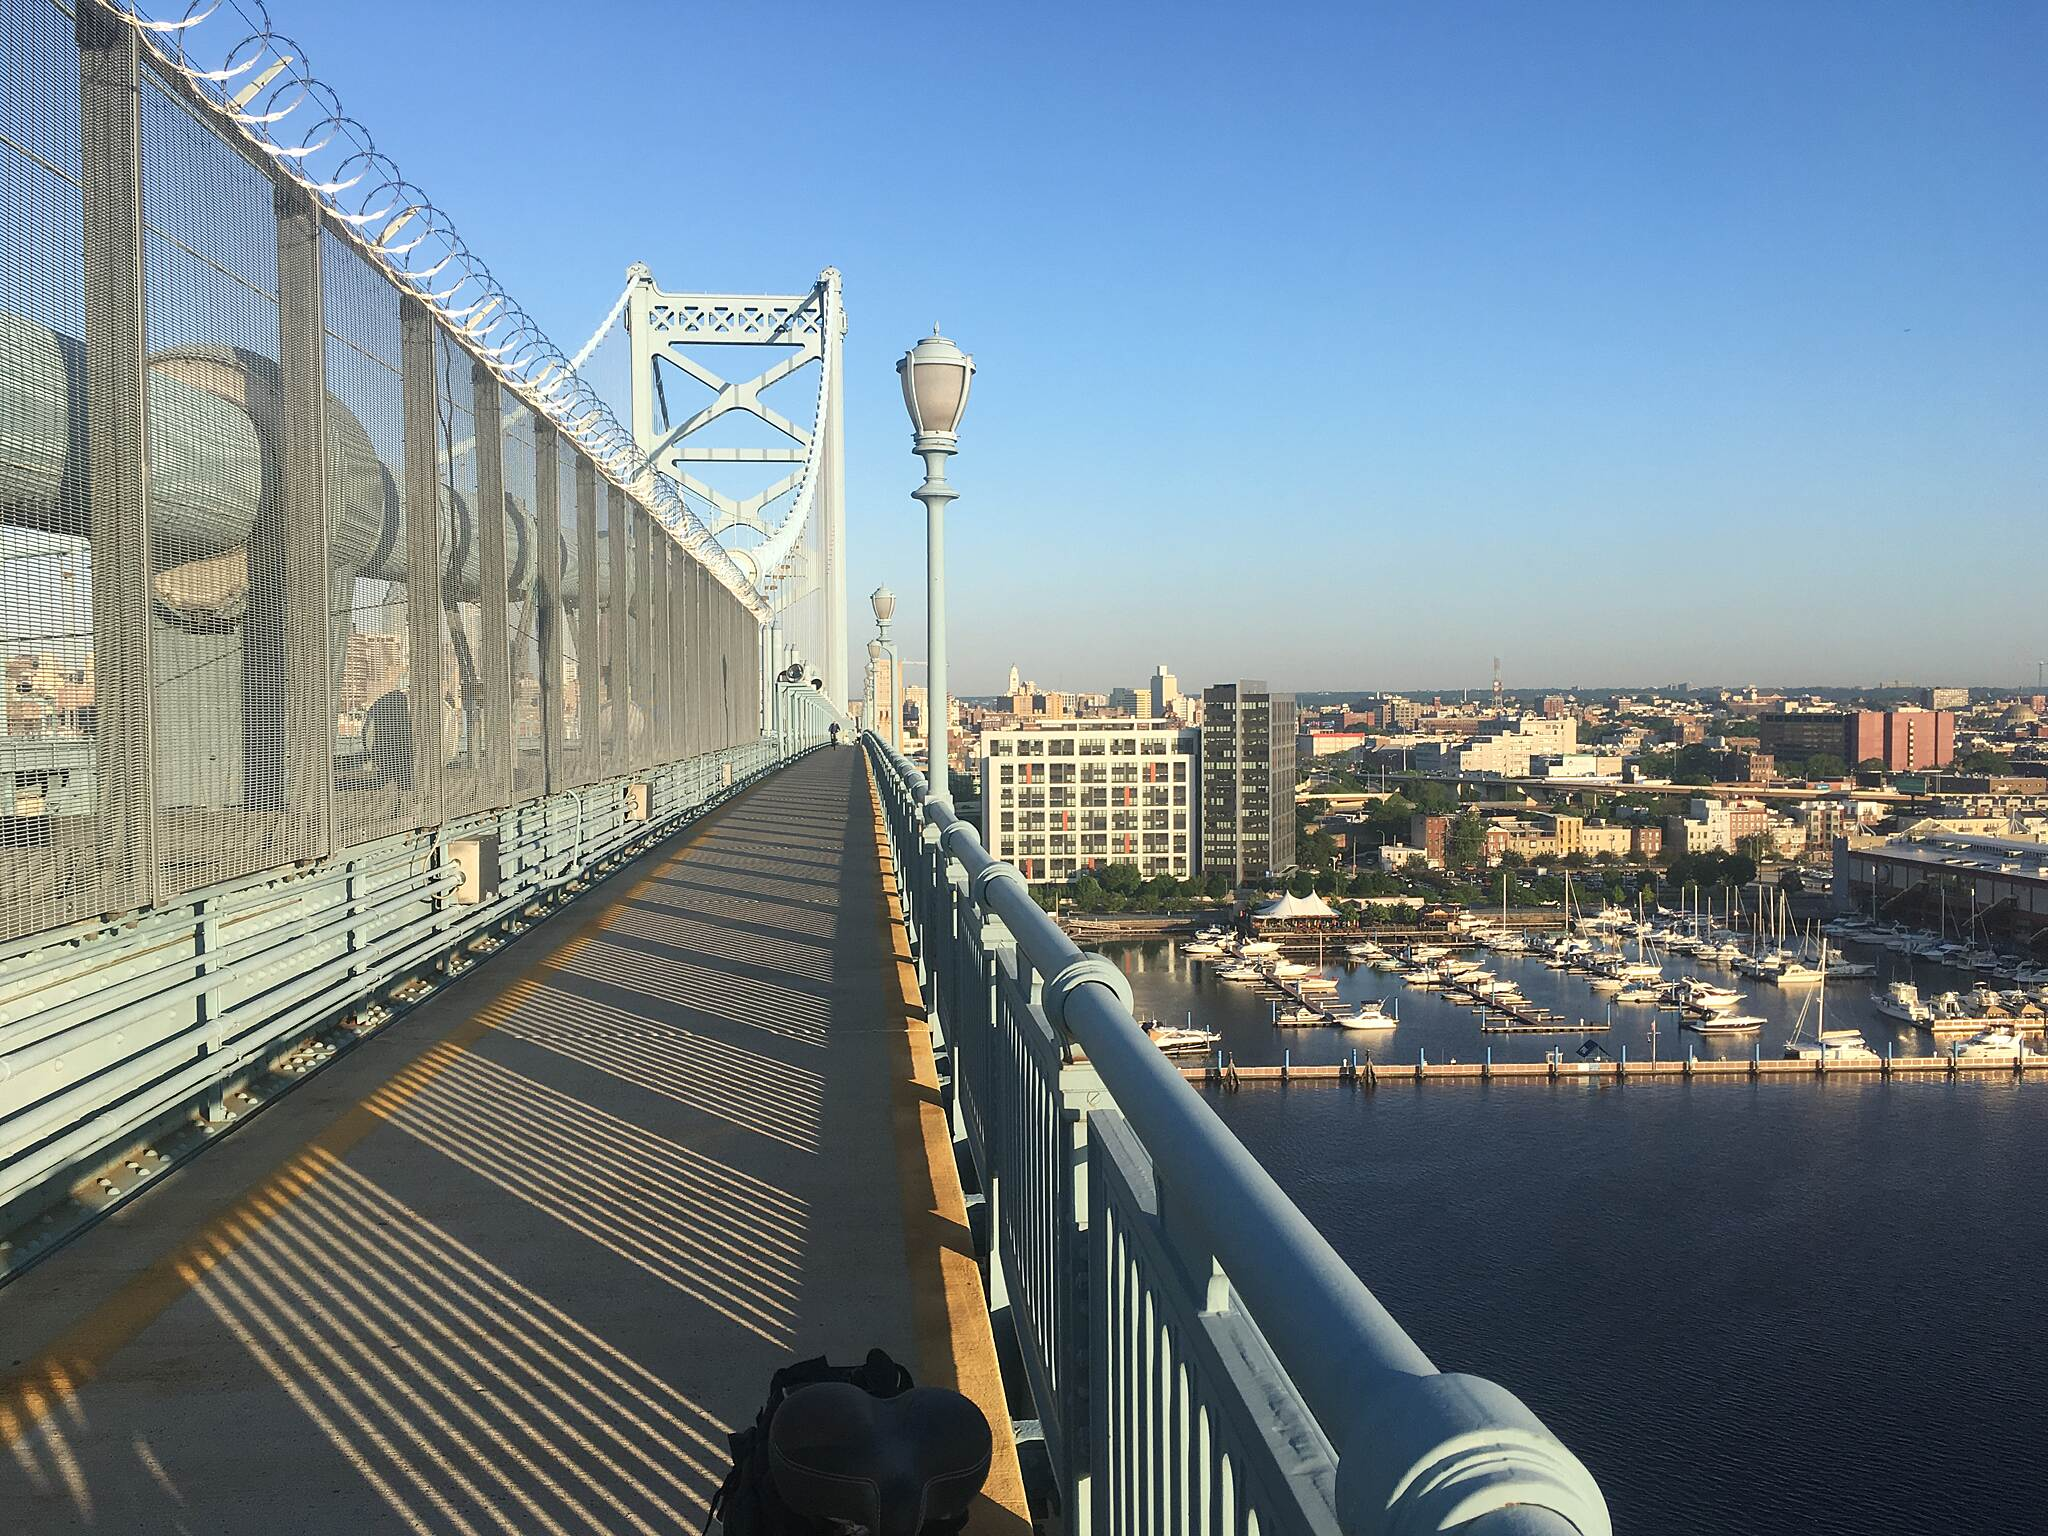 Ben Franklin Bridge Benjamin Franklin Bridge - North walkway 2018 Looking east into Philadelphia.